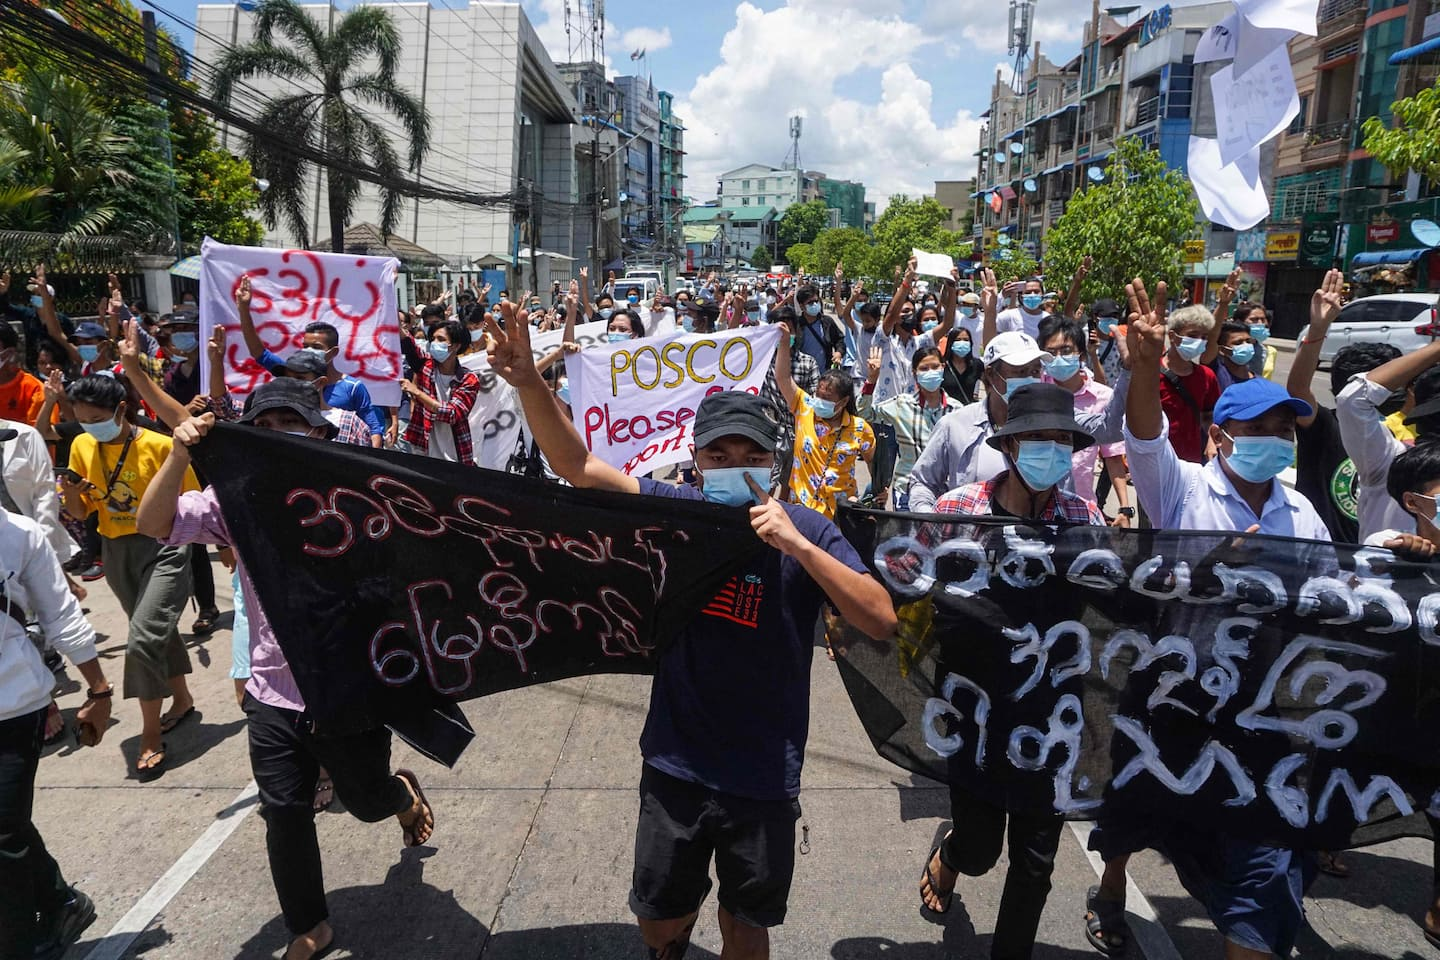 100 days after the coup in Myanmar, the battle for control of the country continues